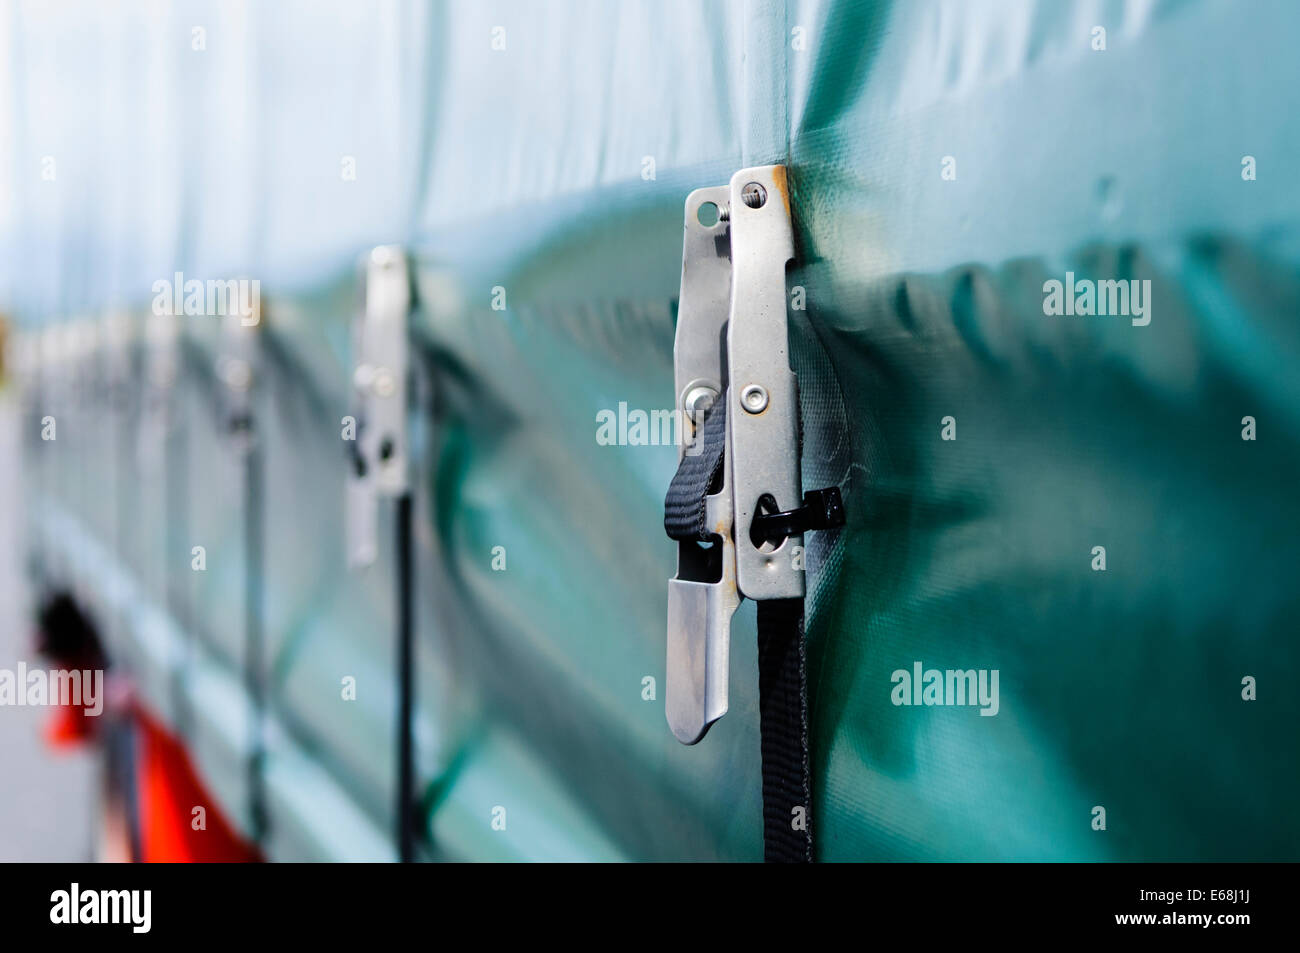 Tie-down straps and shackles on a curtain-sided trailer (Tautliner) - Stock Image